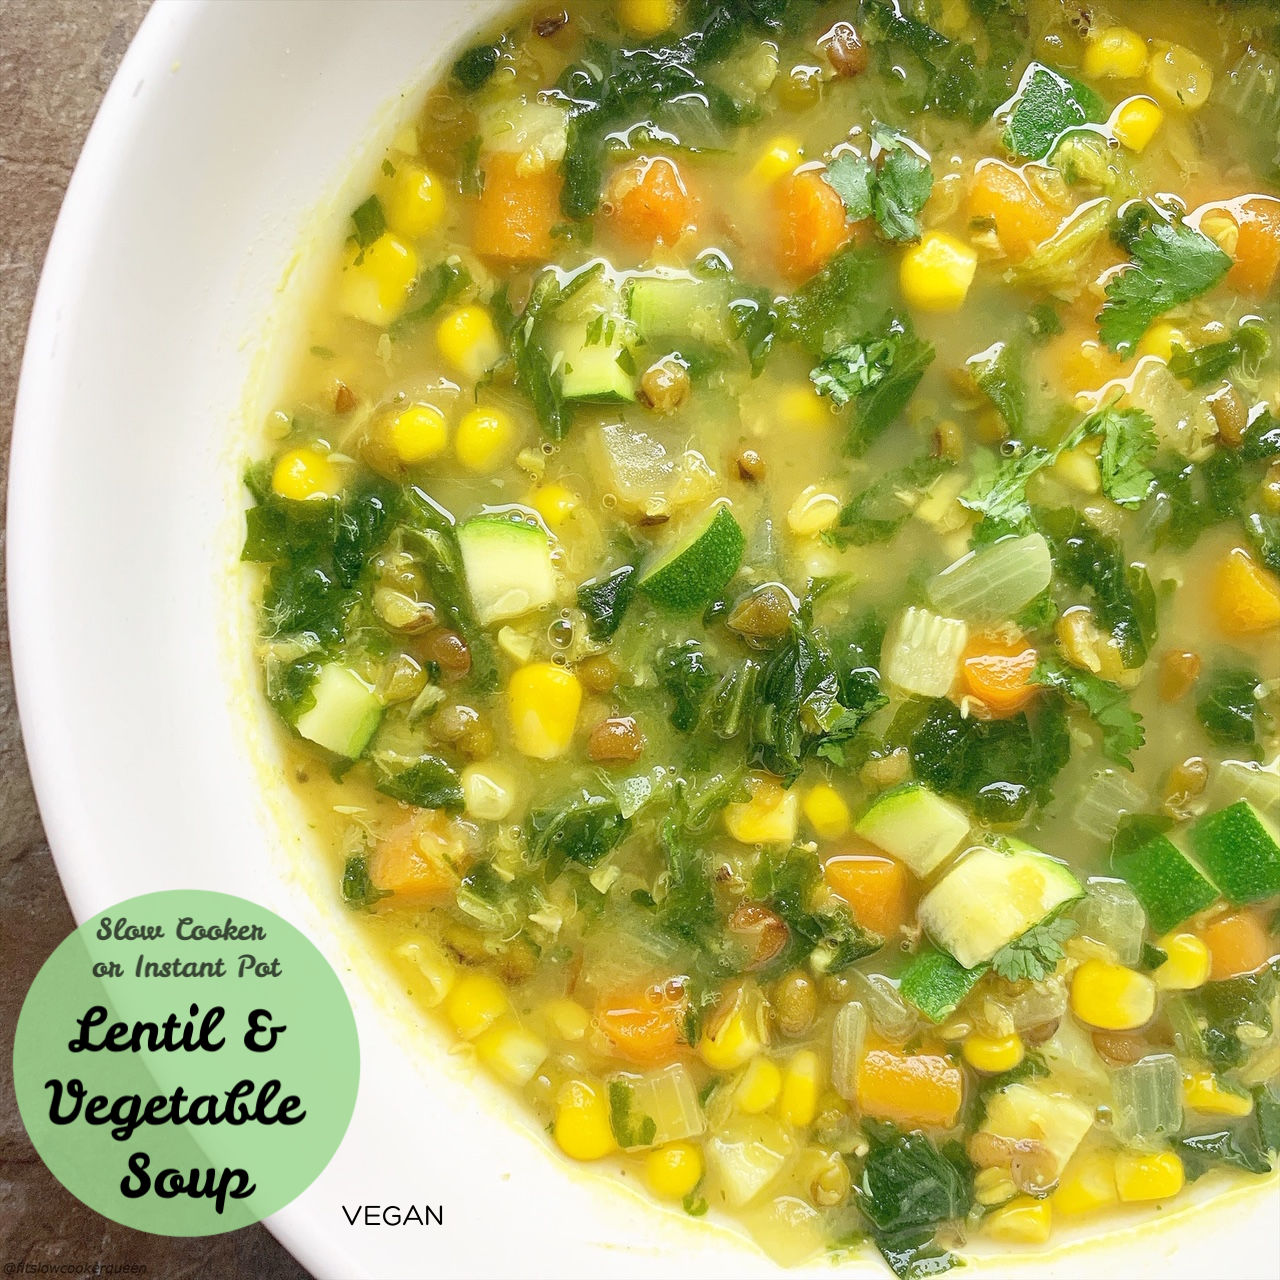 Lentils and vegetables star in this simple vegan soup recipe that's packed with flavor. Make this healthy soup in your slow cooker or Instant Pot.